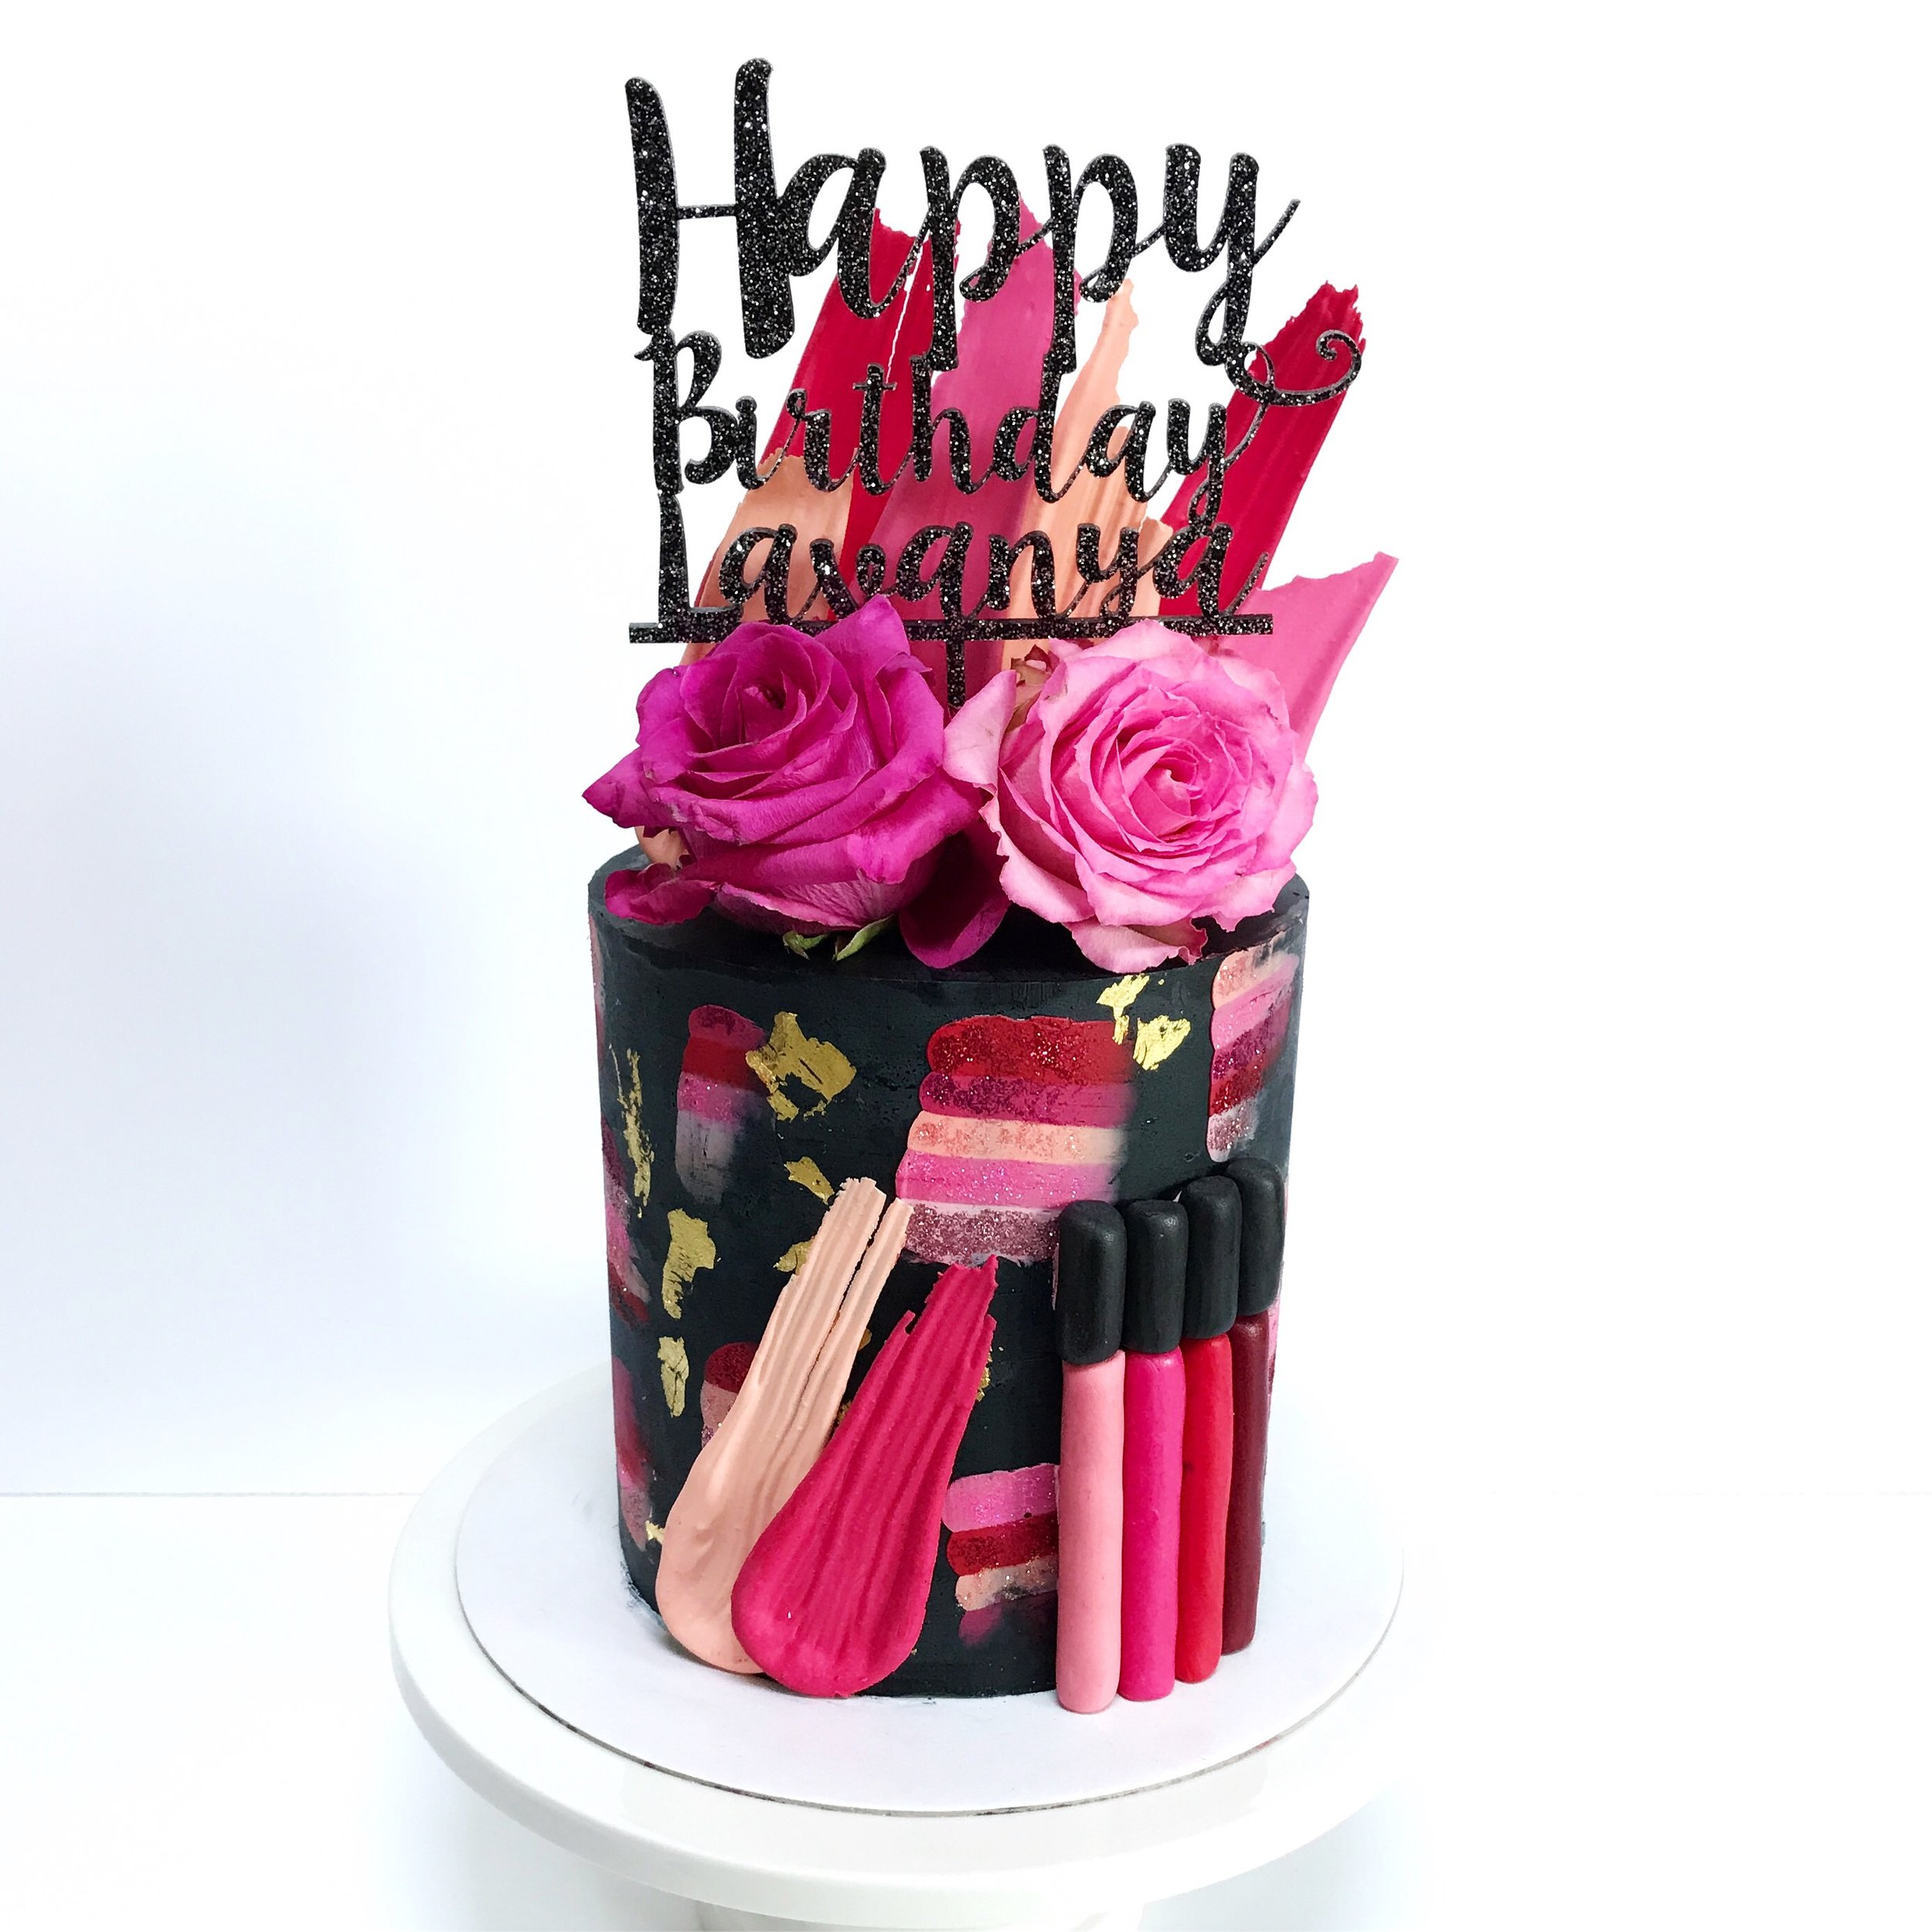 Make-up buttercream cake with chocolate brushstrokes.JPG